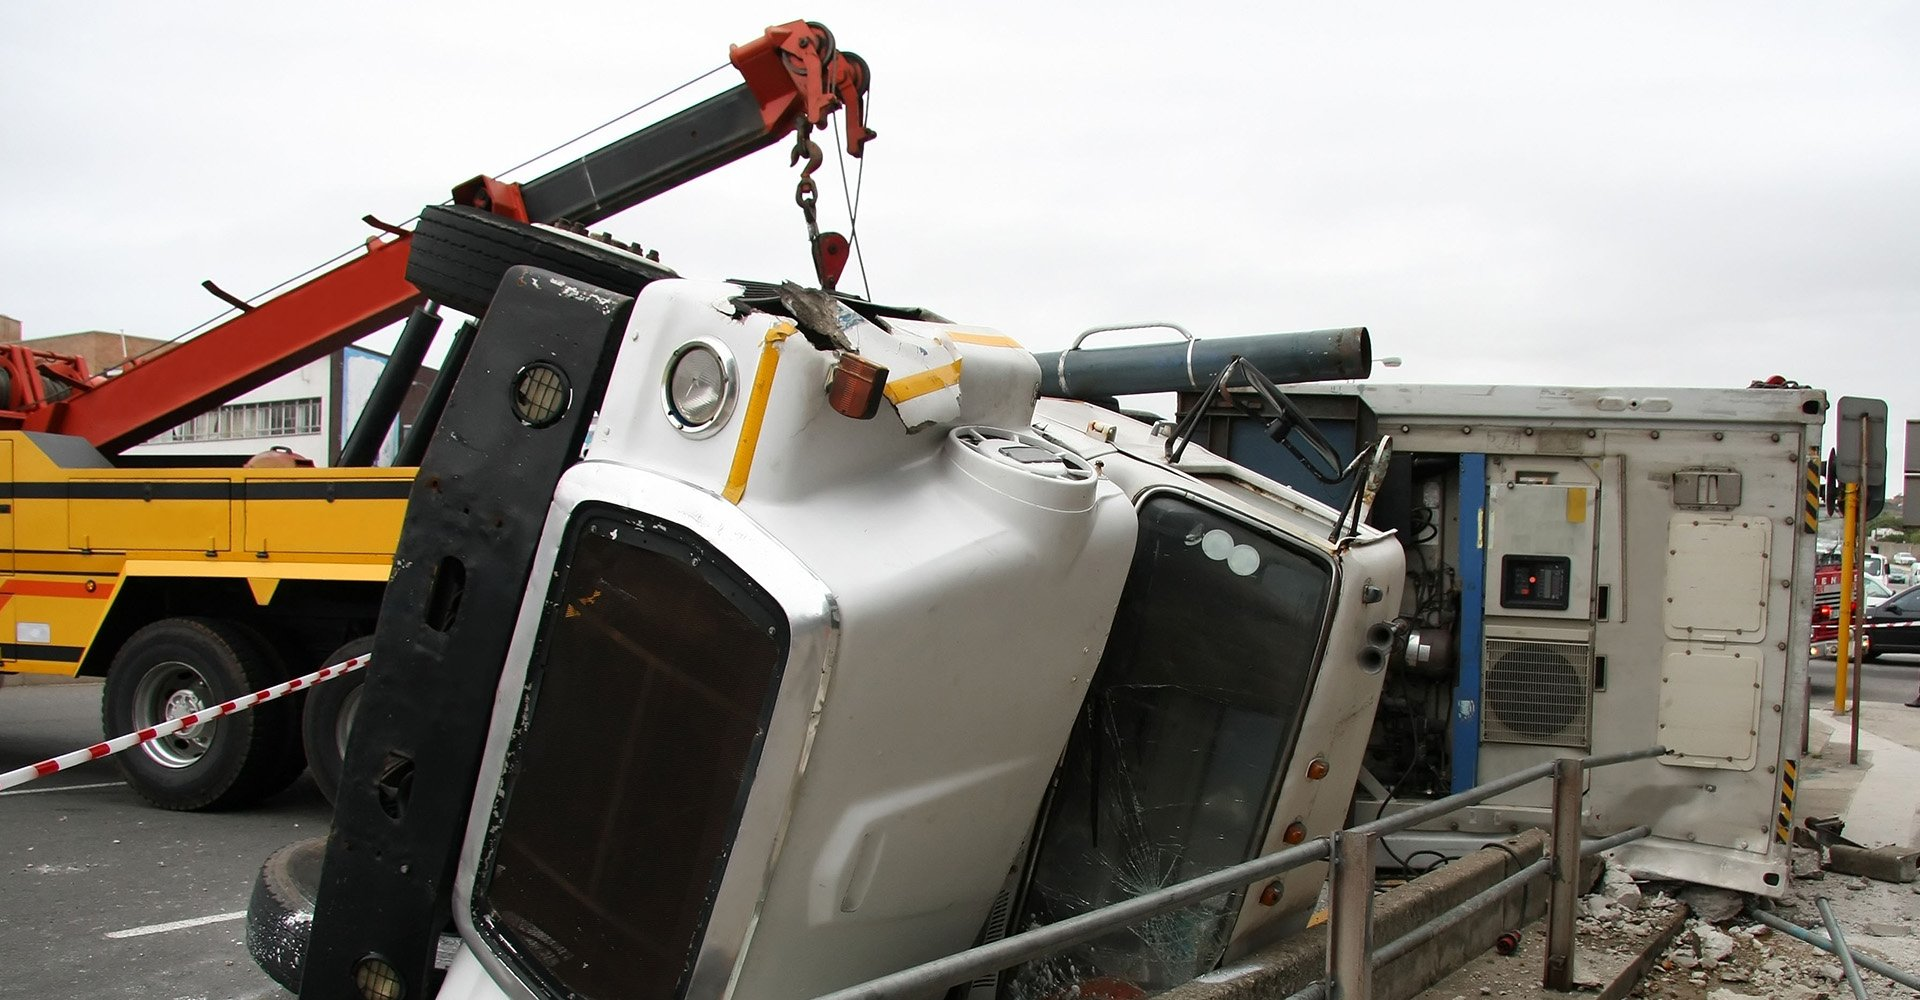 Accident removal assistance